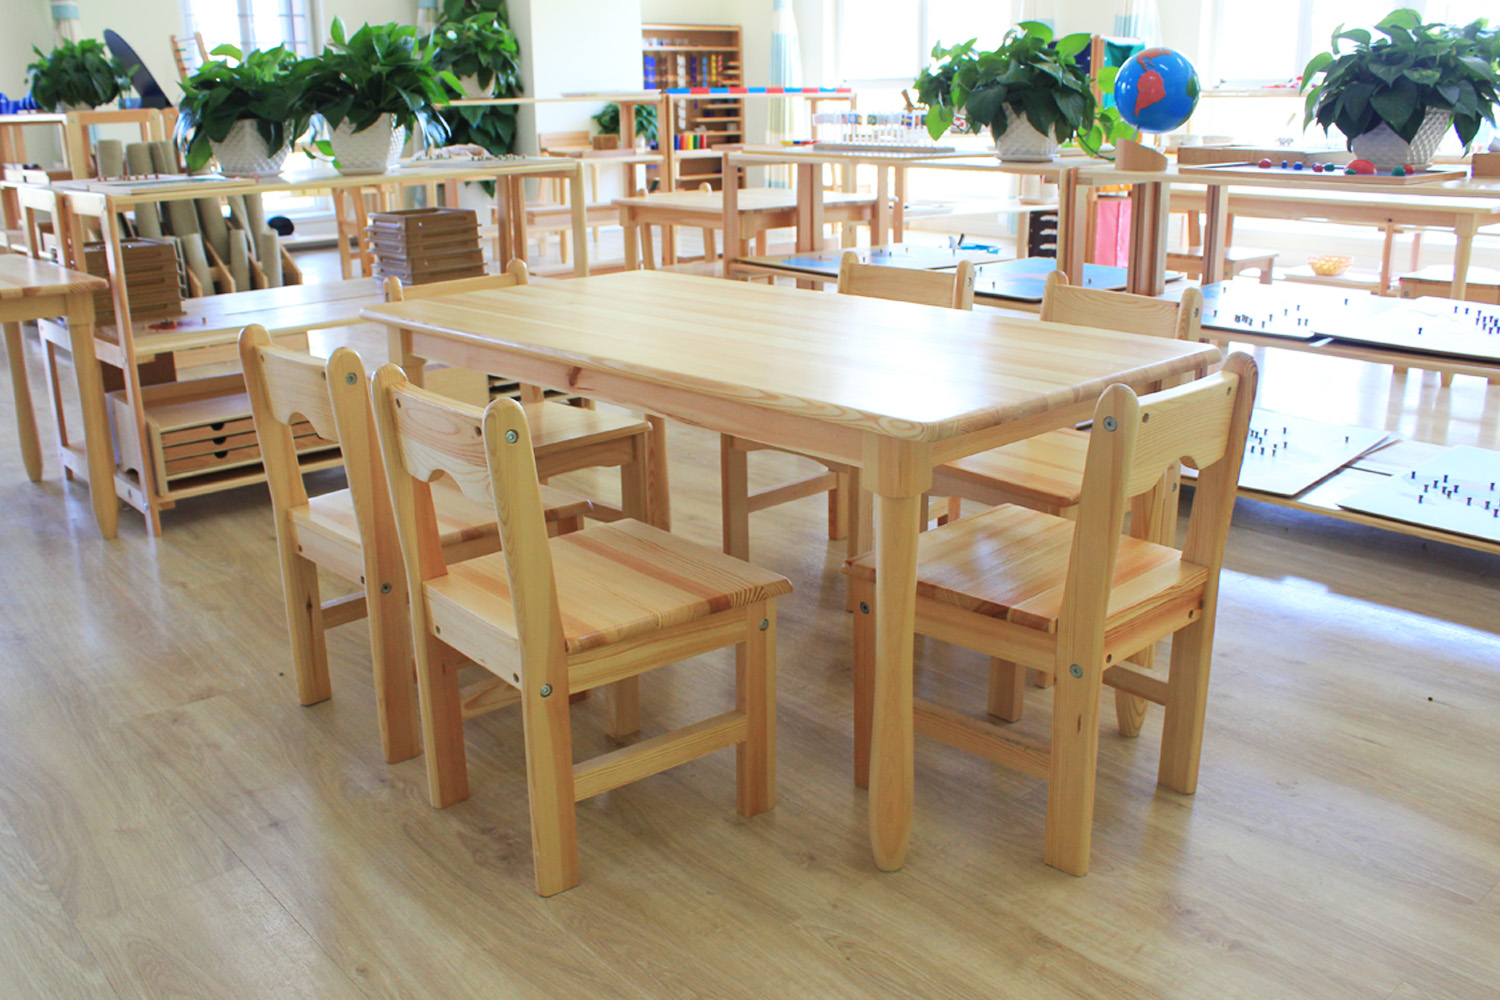 Study Table And Chair Solid Wood Kindergarten Table Chair Children S Table And Chair Set Game Toy Table Baby Study Table